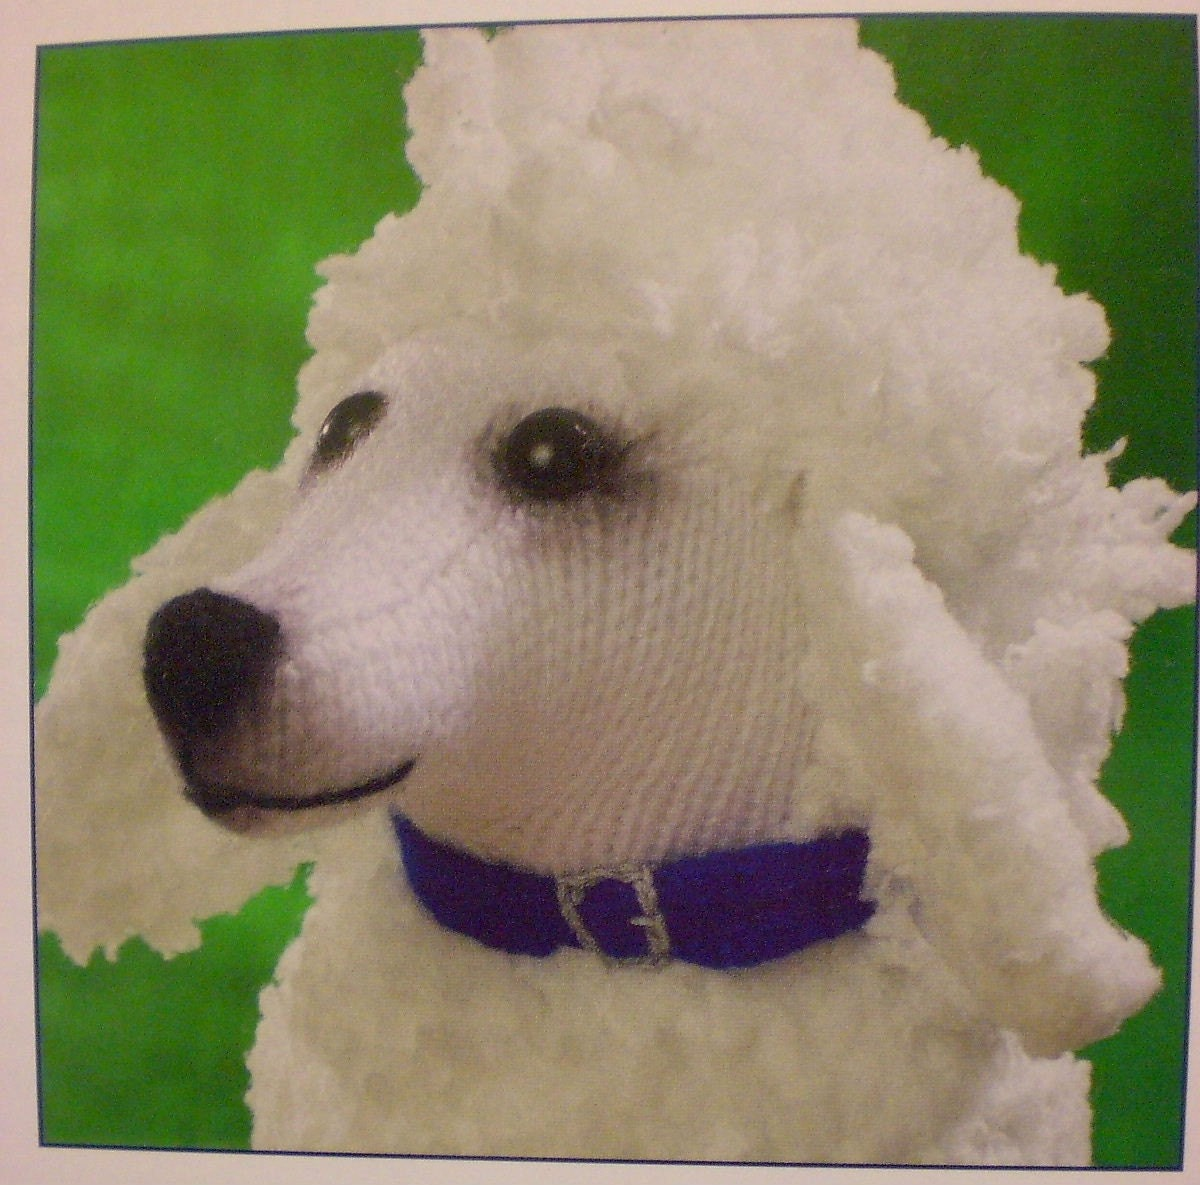 Sirdar Knitting Patterns Toys : ALAN DART Sirdar Poodle Dog Toy Knitting Pattern NEW